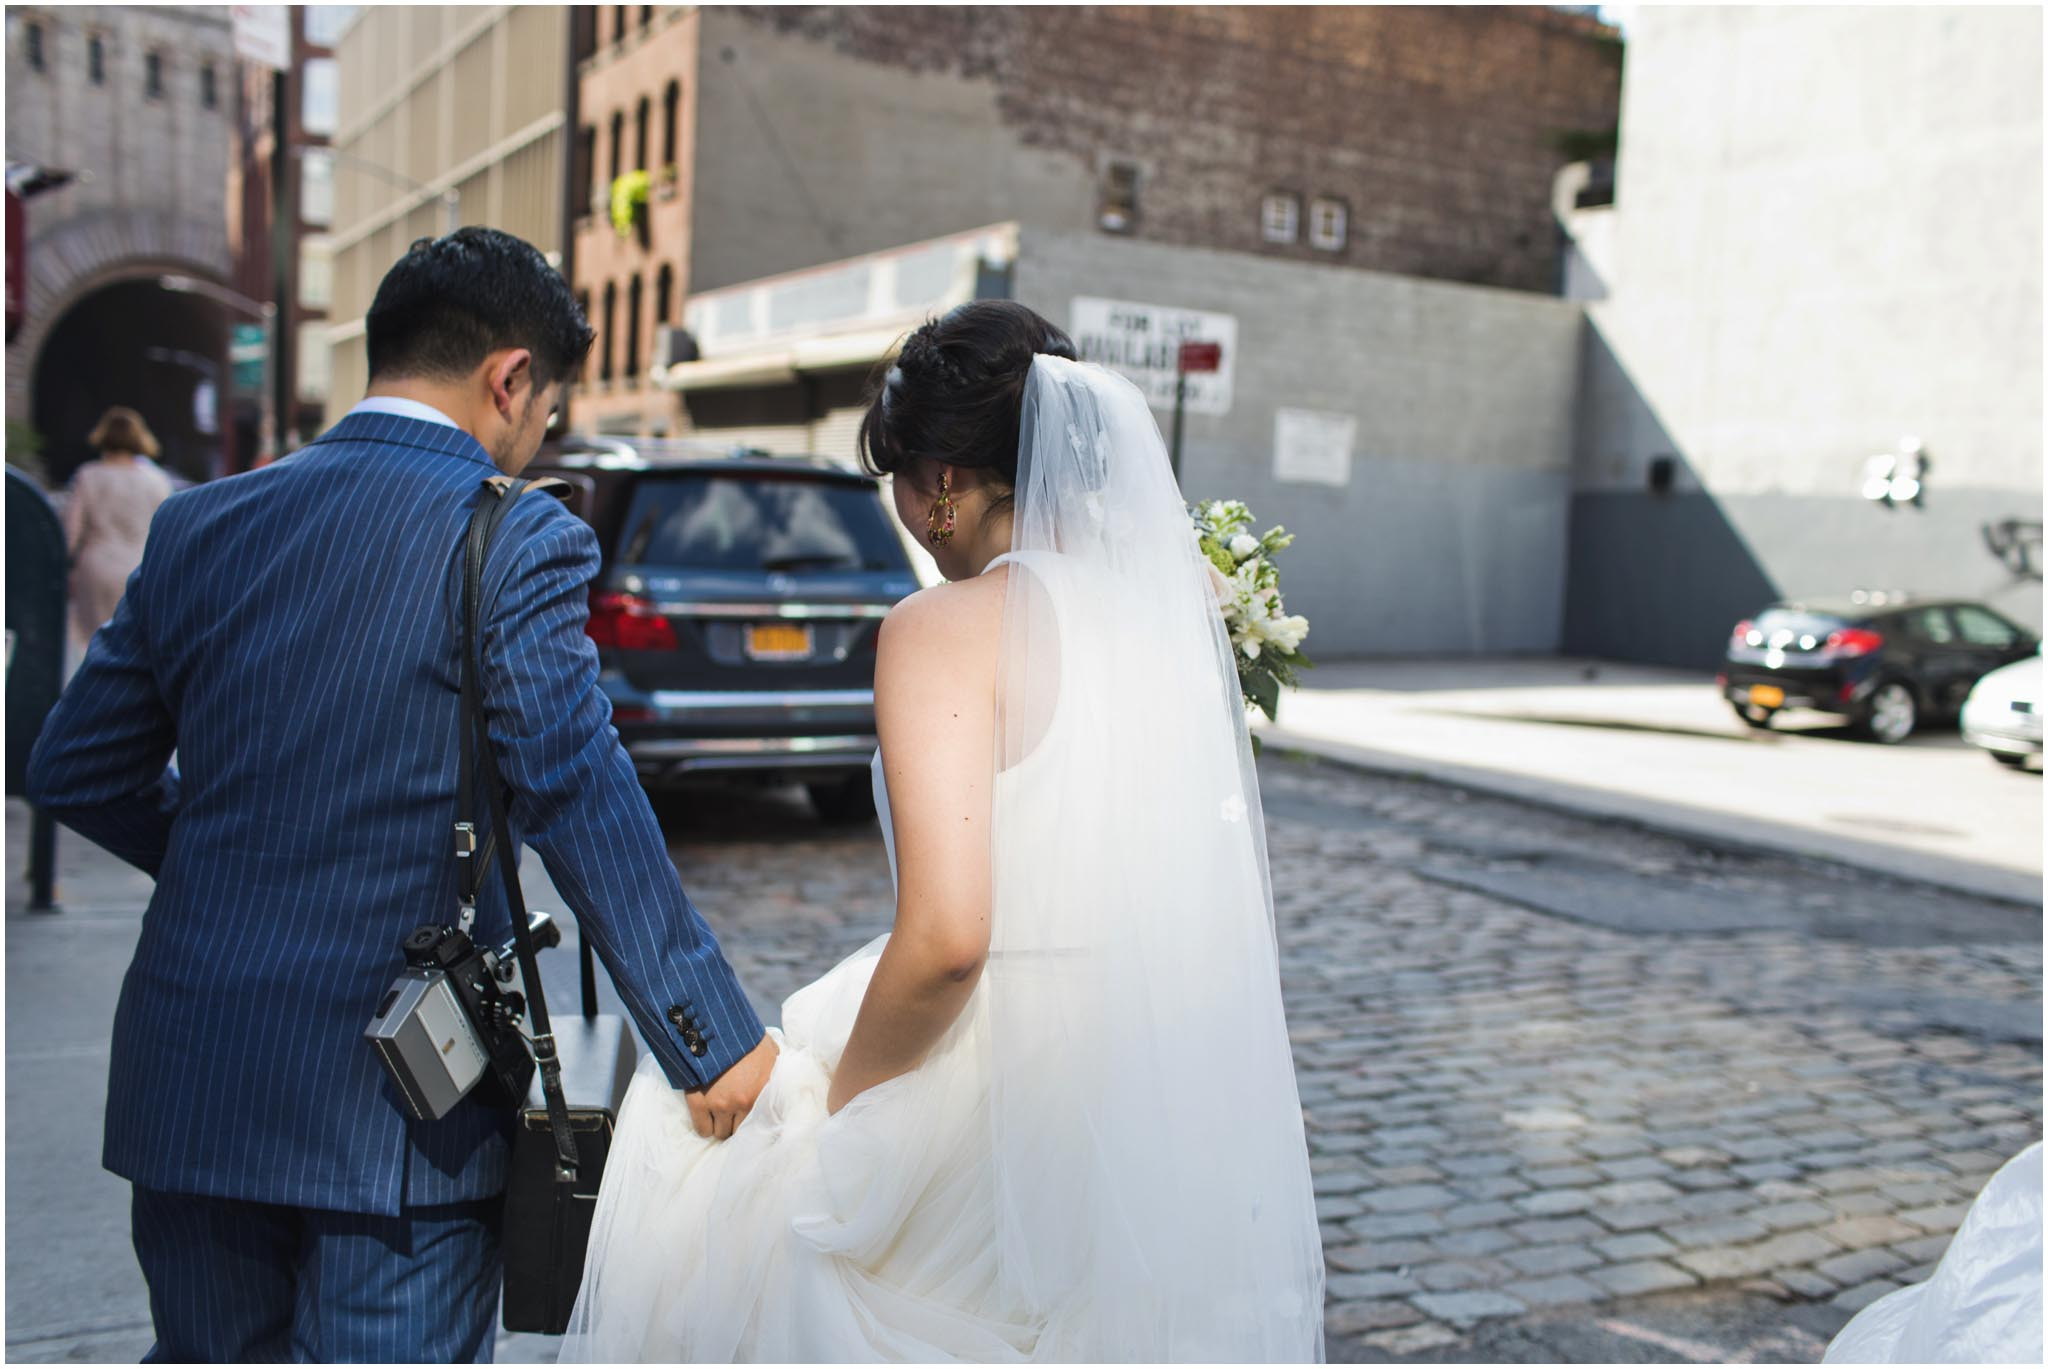 Brooklyn, Dumbo, wedding, portraits